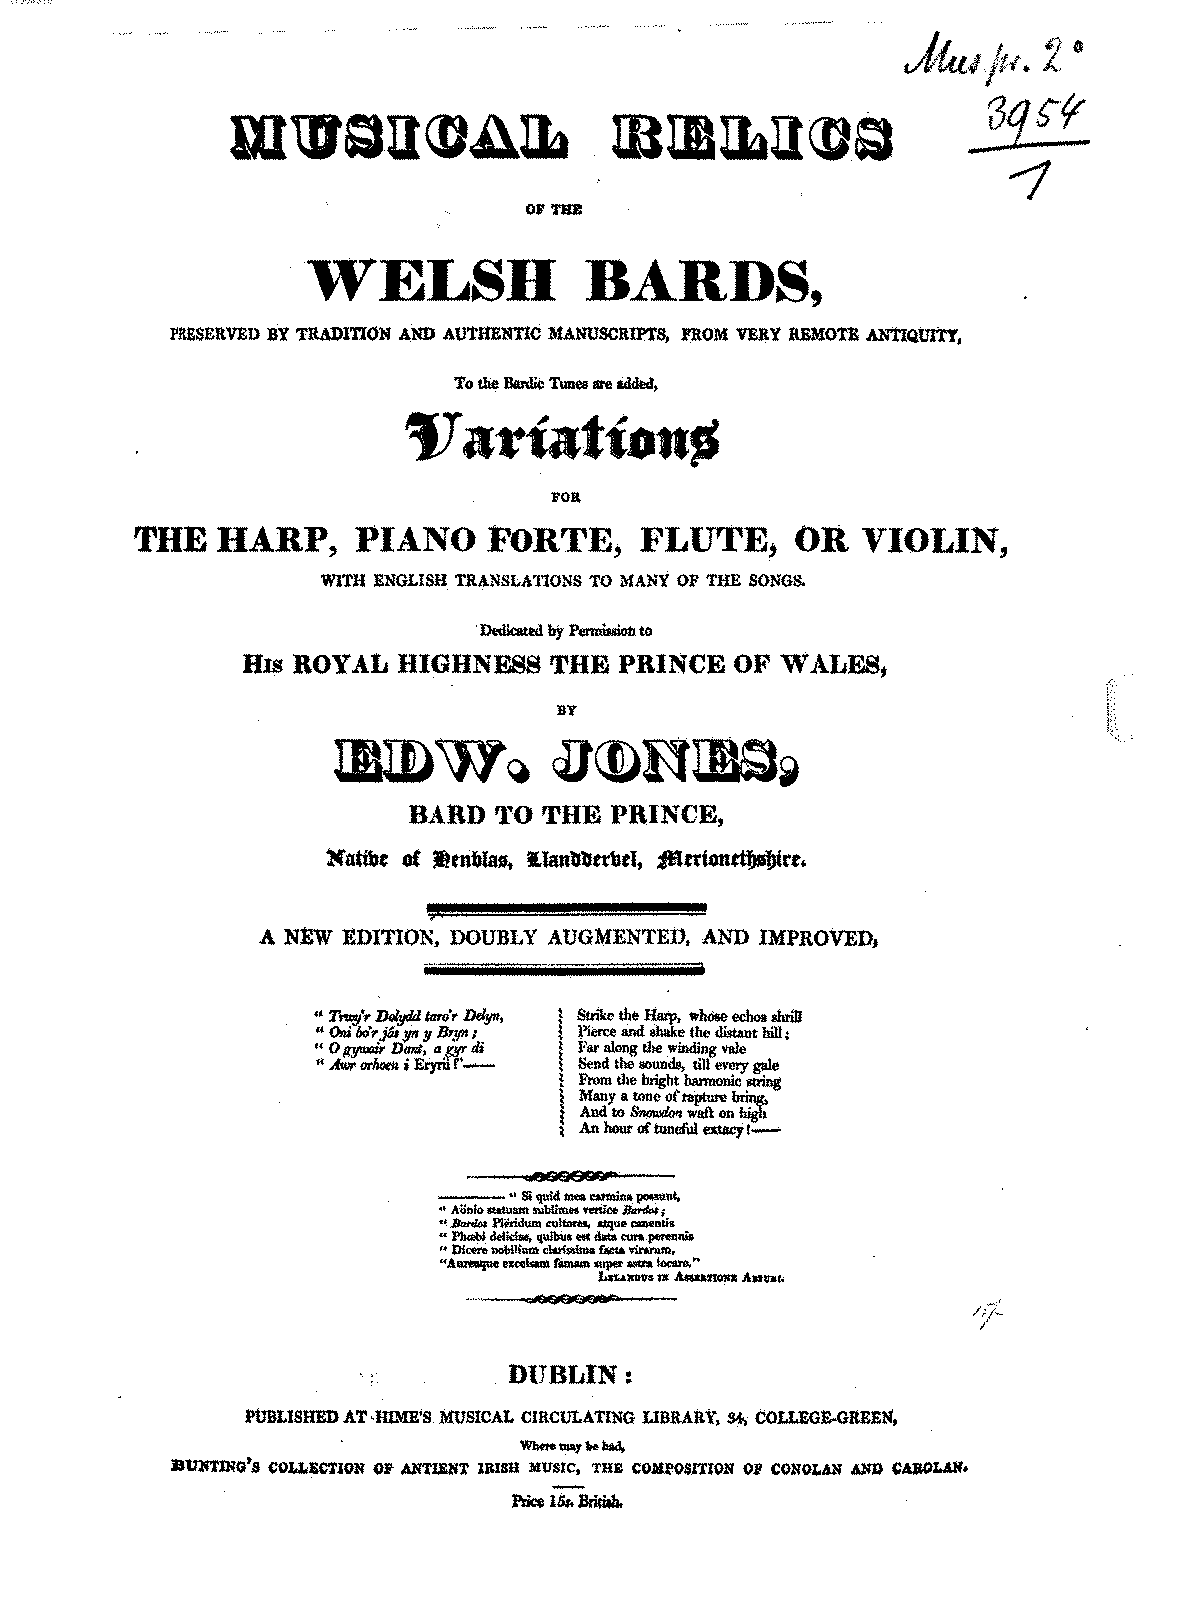 PMLP87702-jones musical relics bards music new ed 1820.pdf